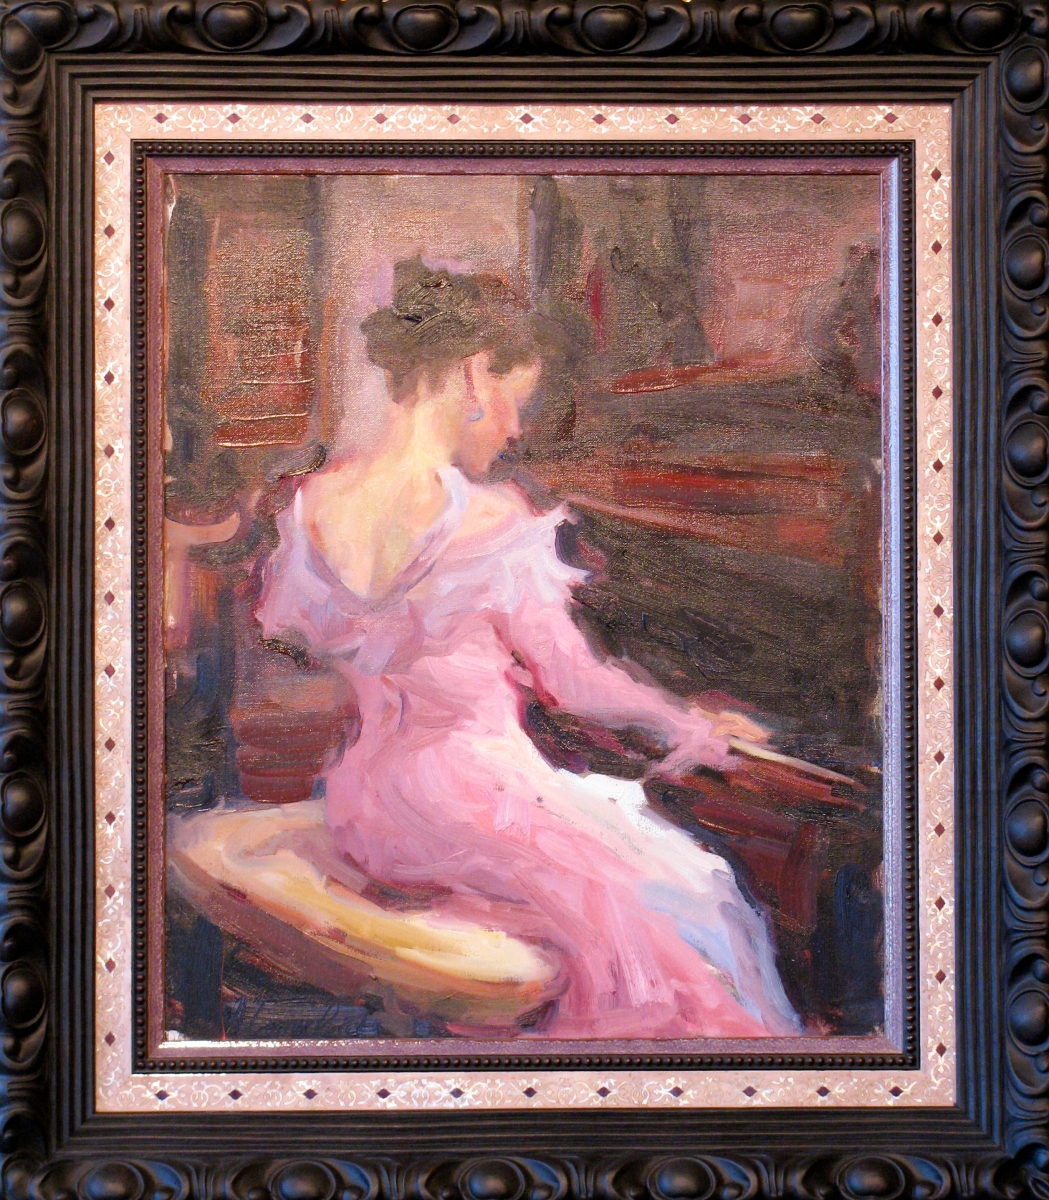 Original oil framed in multi-element frame